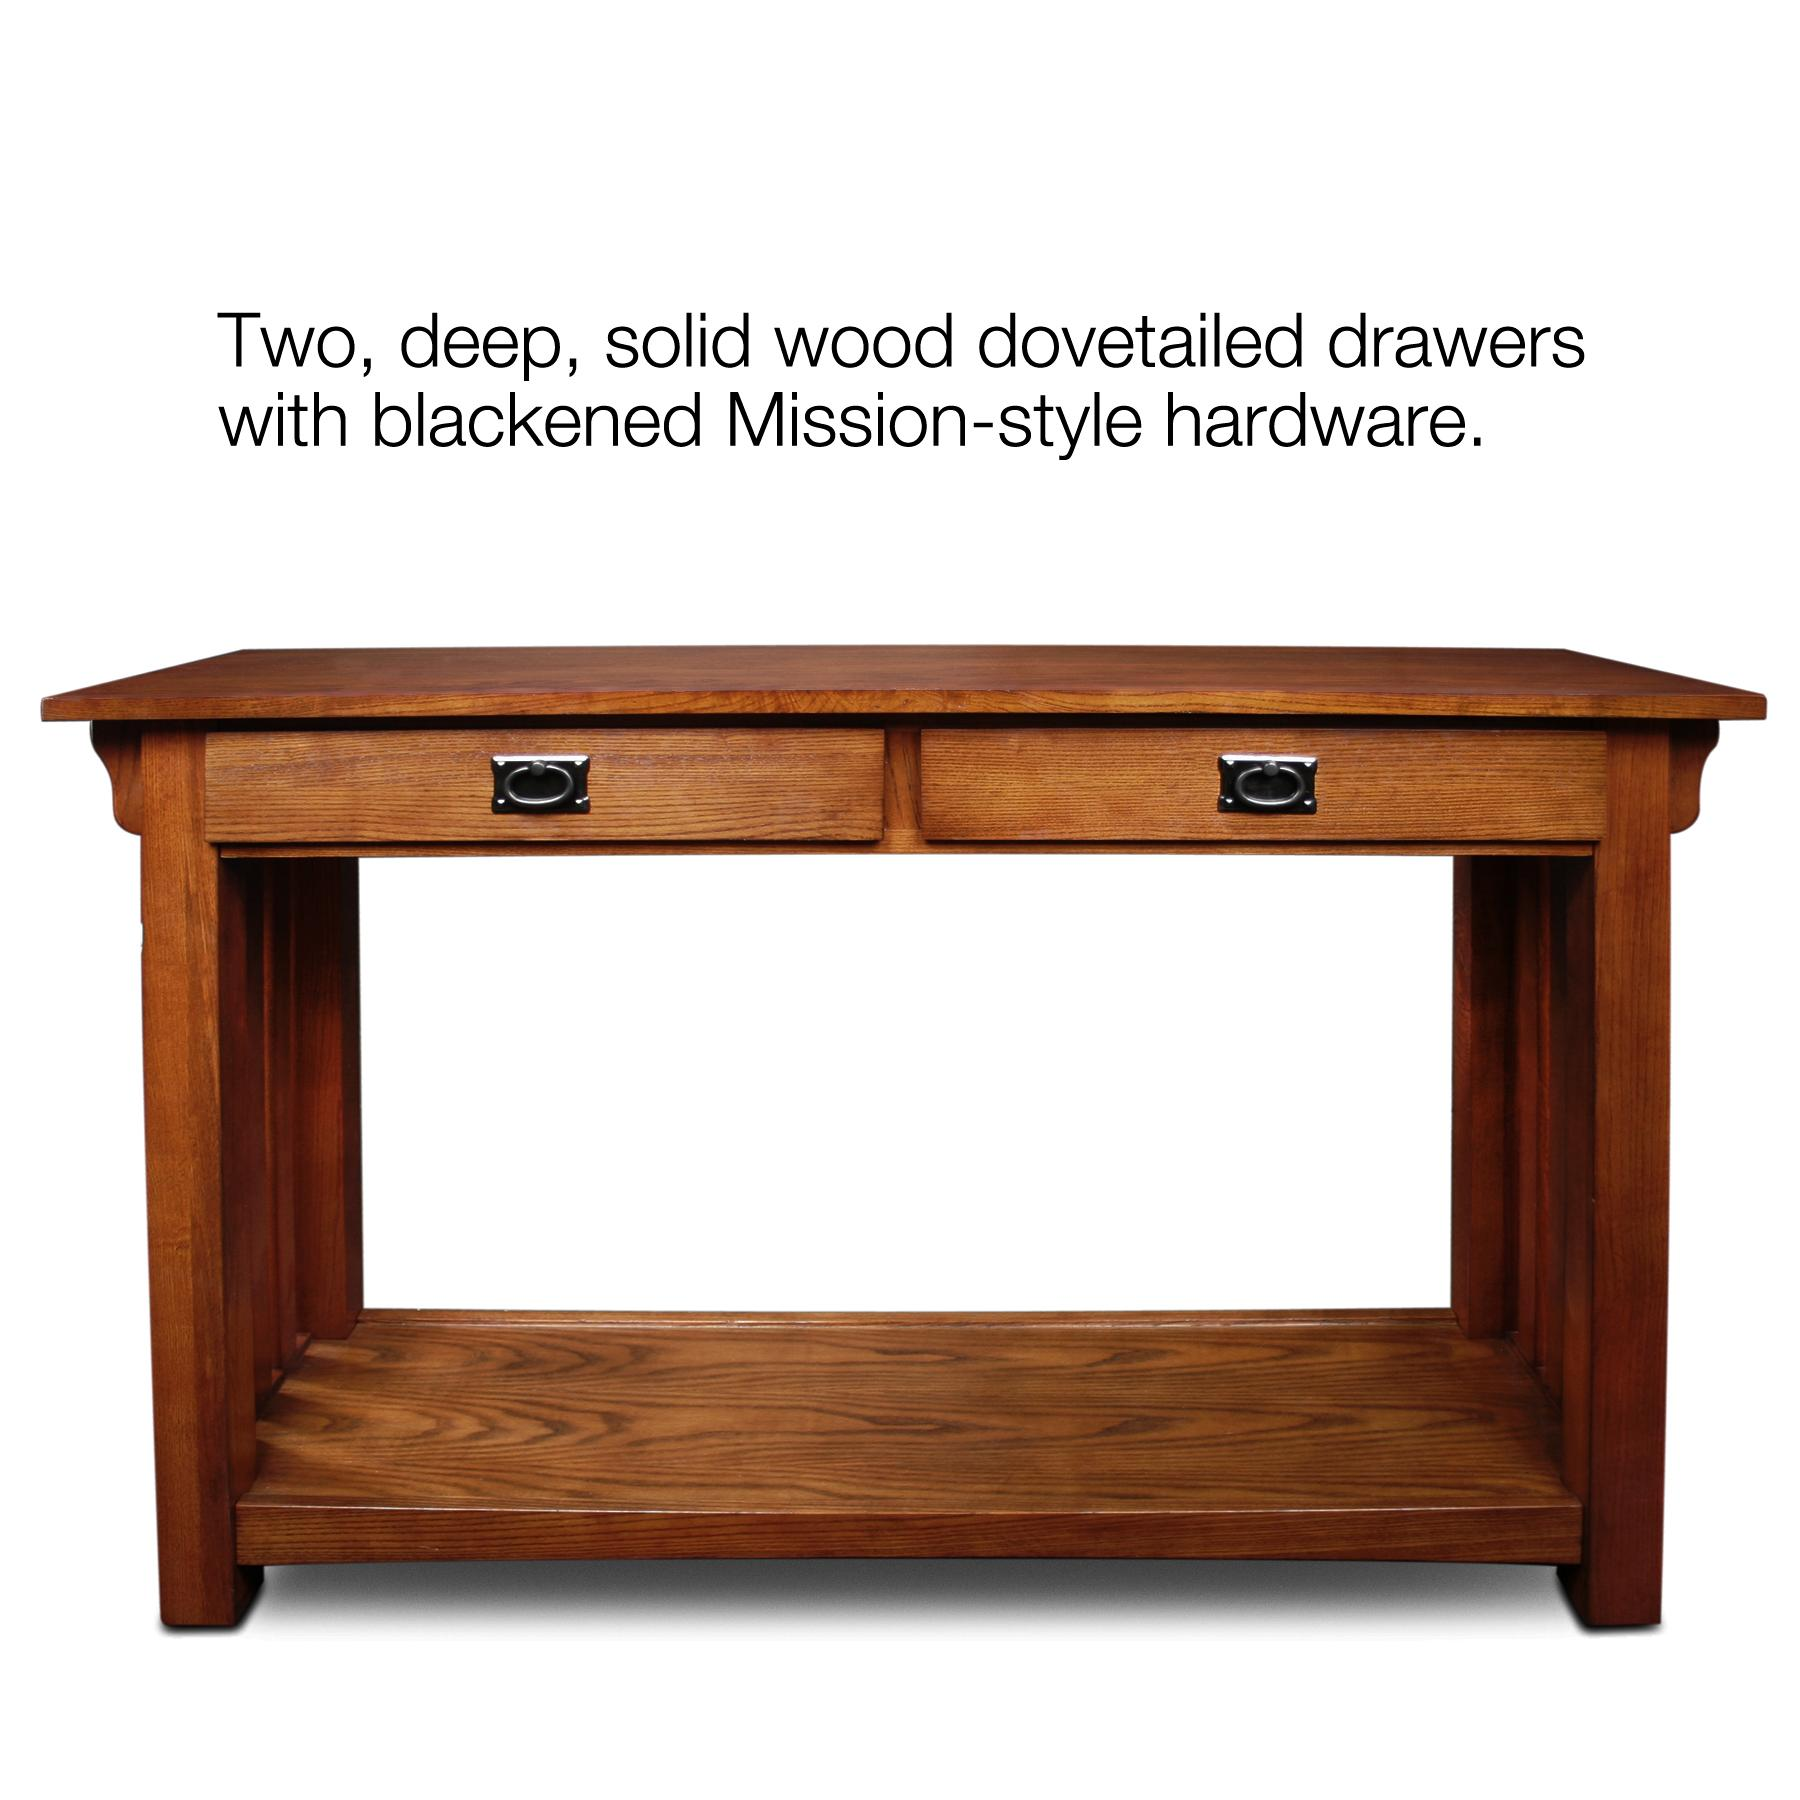 Sofa table hall table console table hall console for 10 inch sofa table